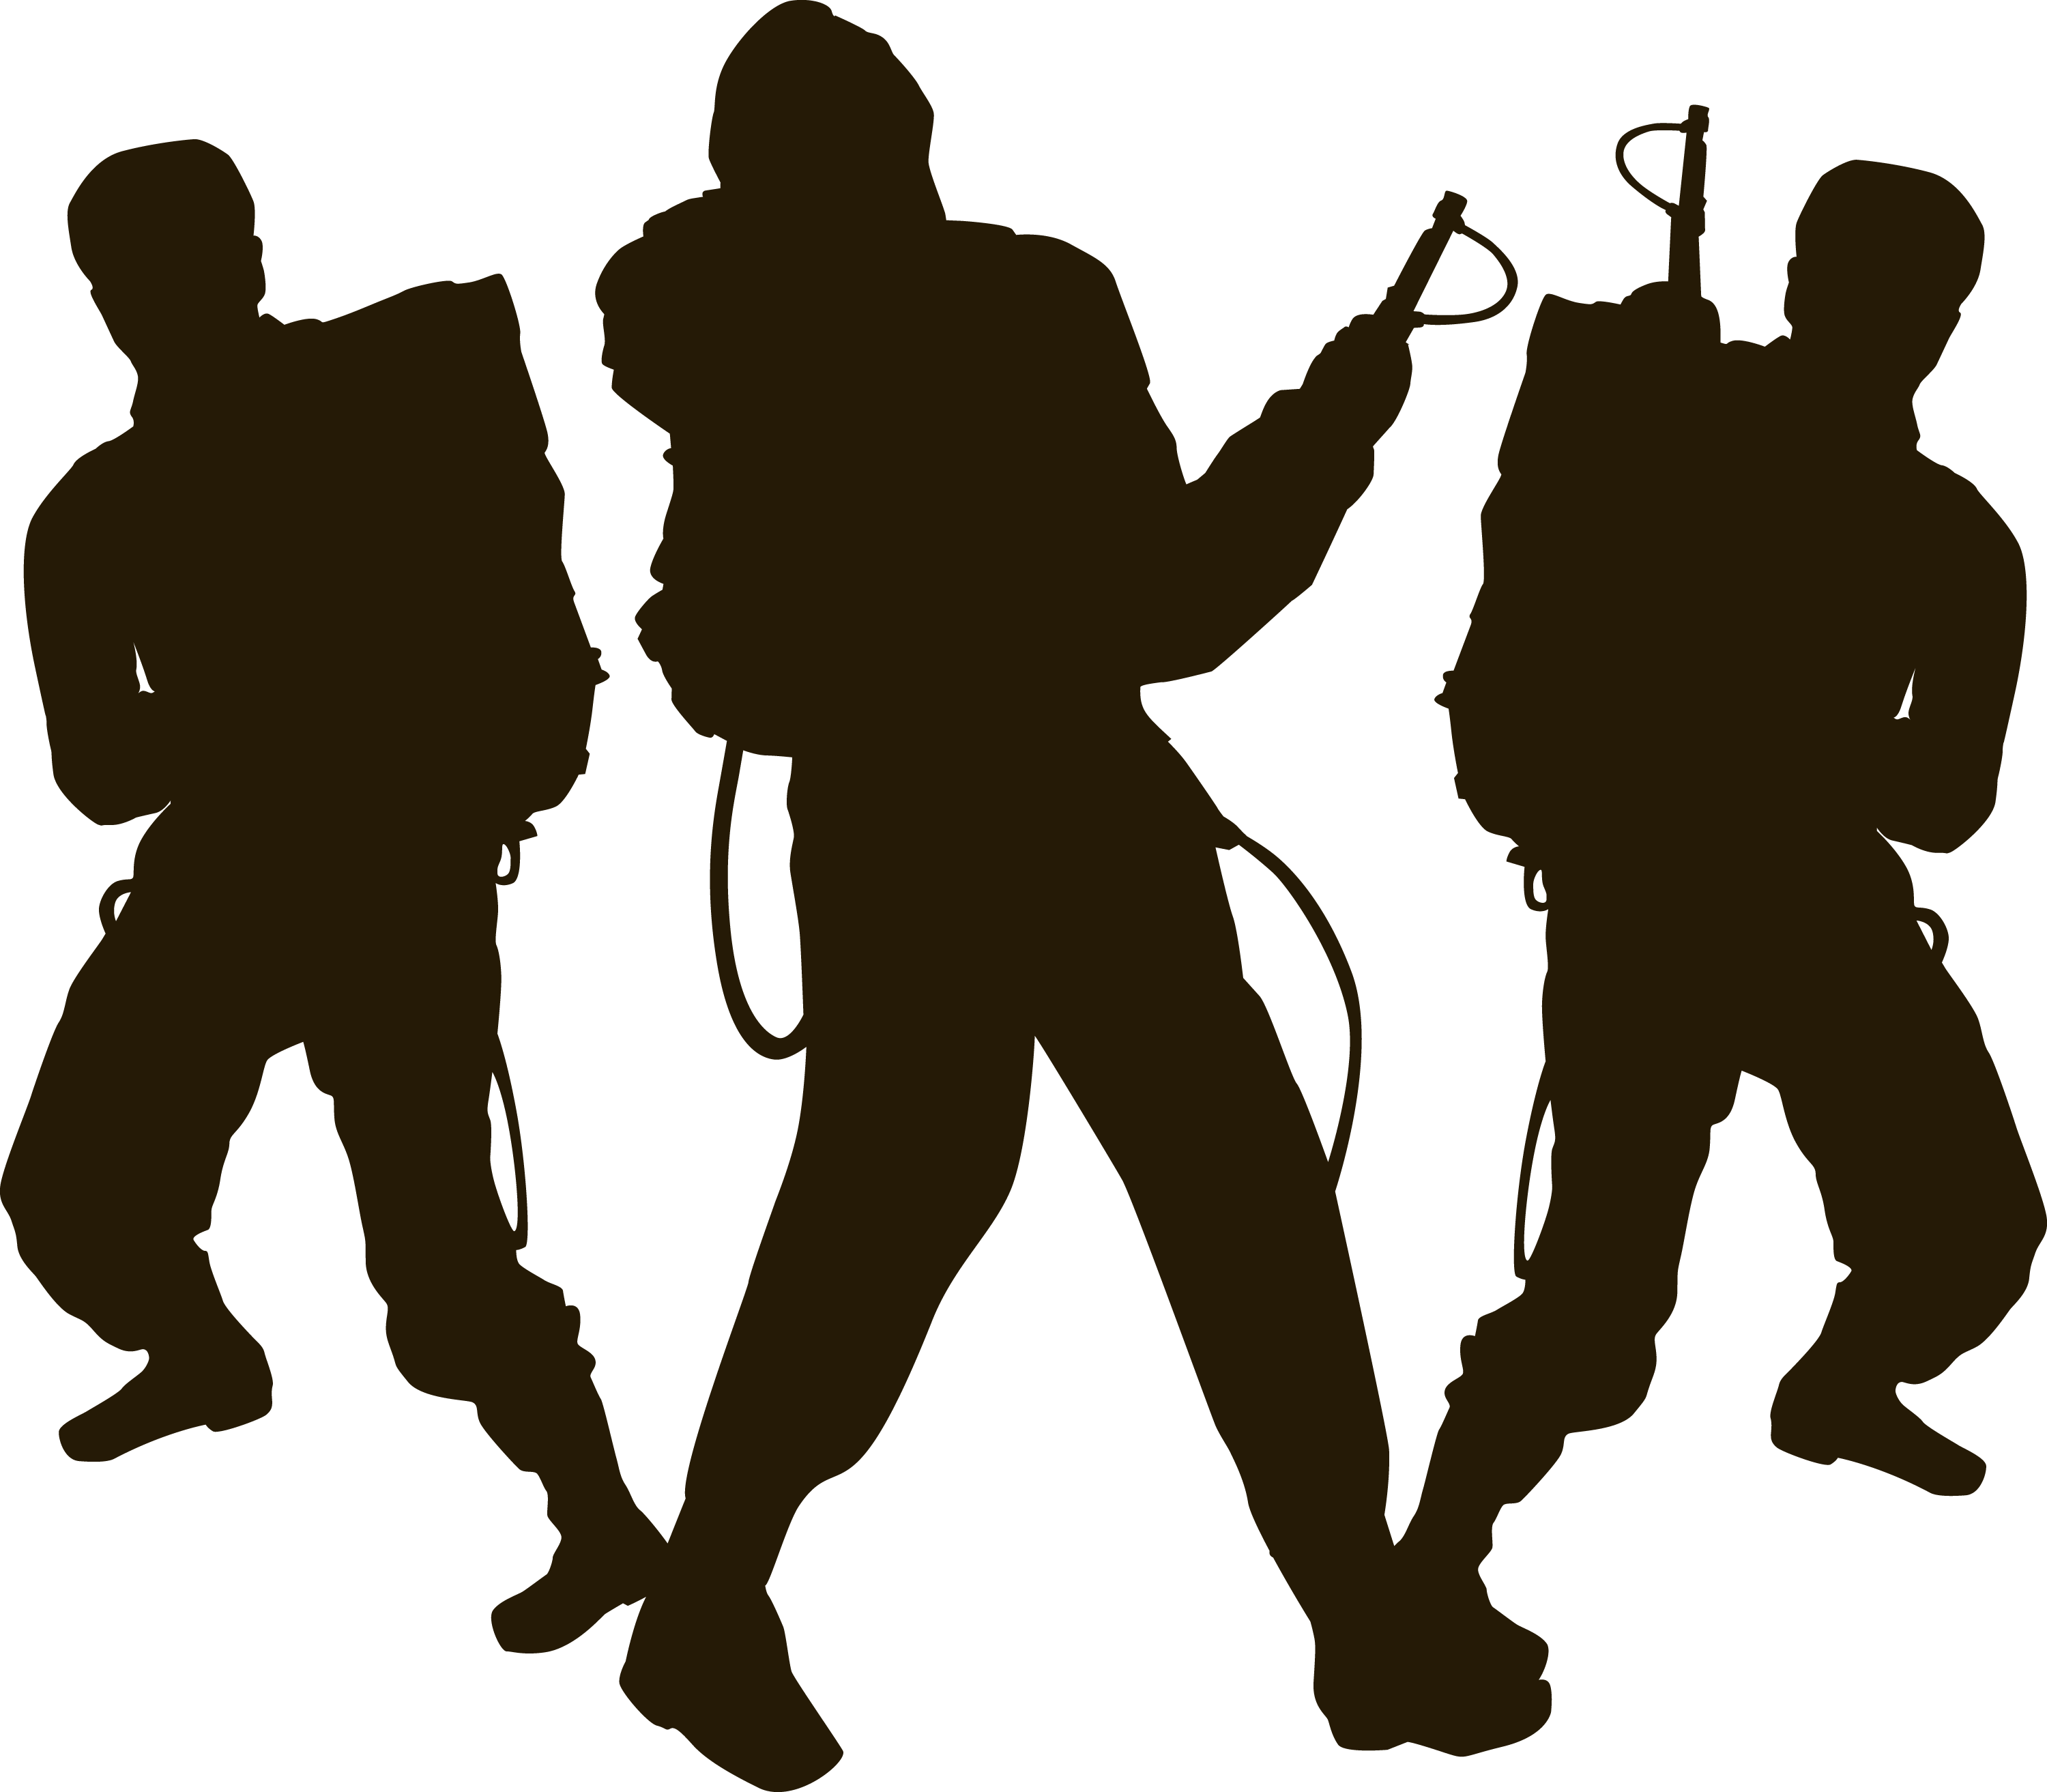 Ghostbusters svg png. Image gb officialcreativeassestsgb silhouette